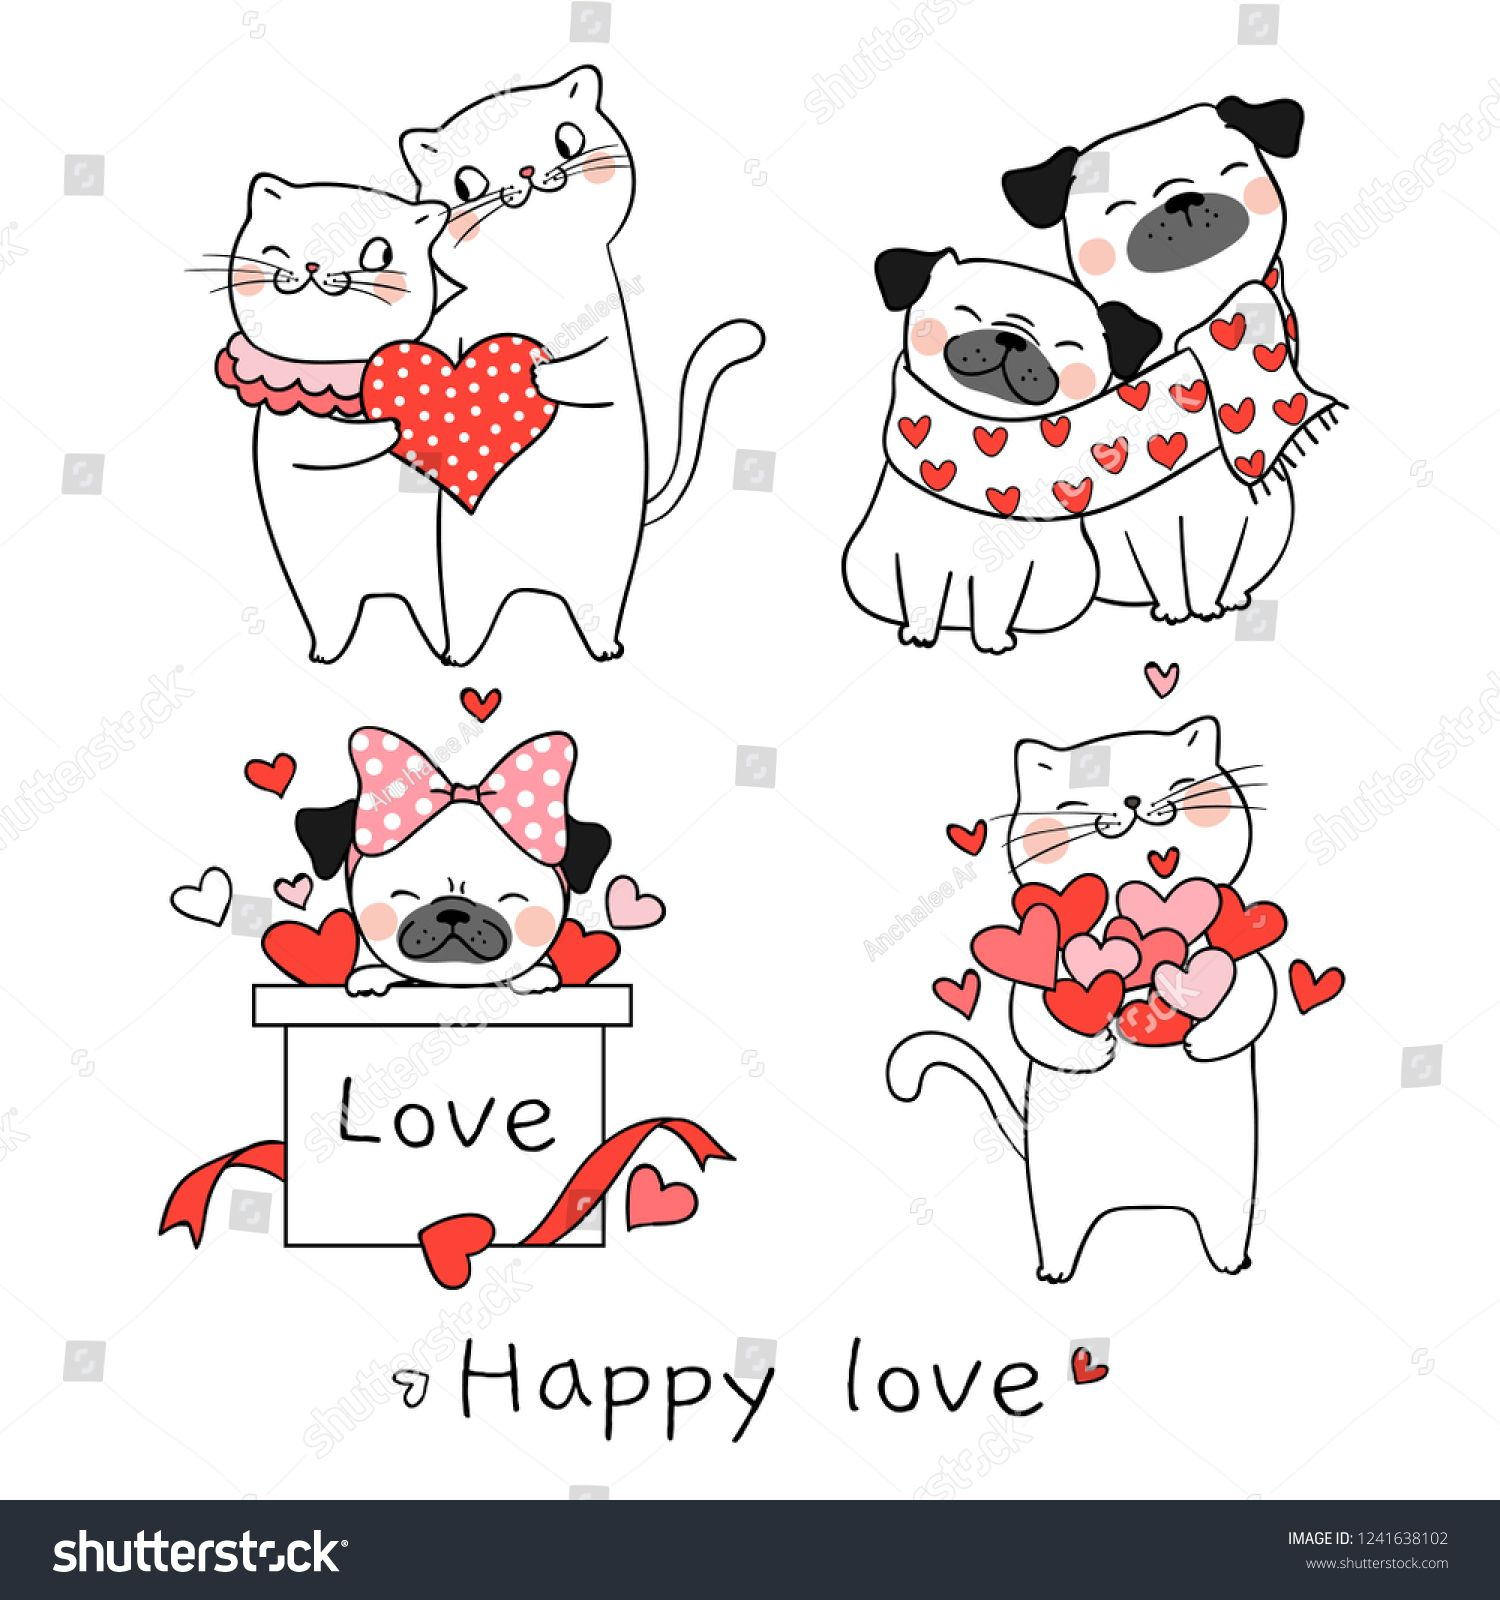 Draw Vector Illustration Collection Portrait Cute Cat And Pug Dog